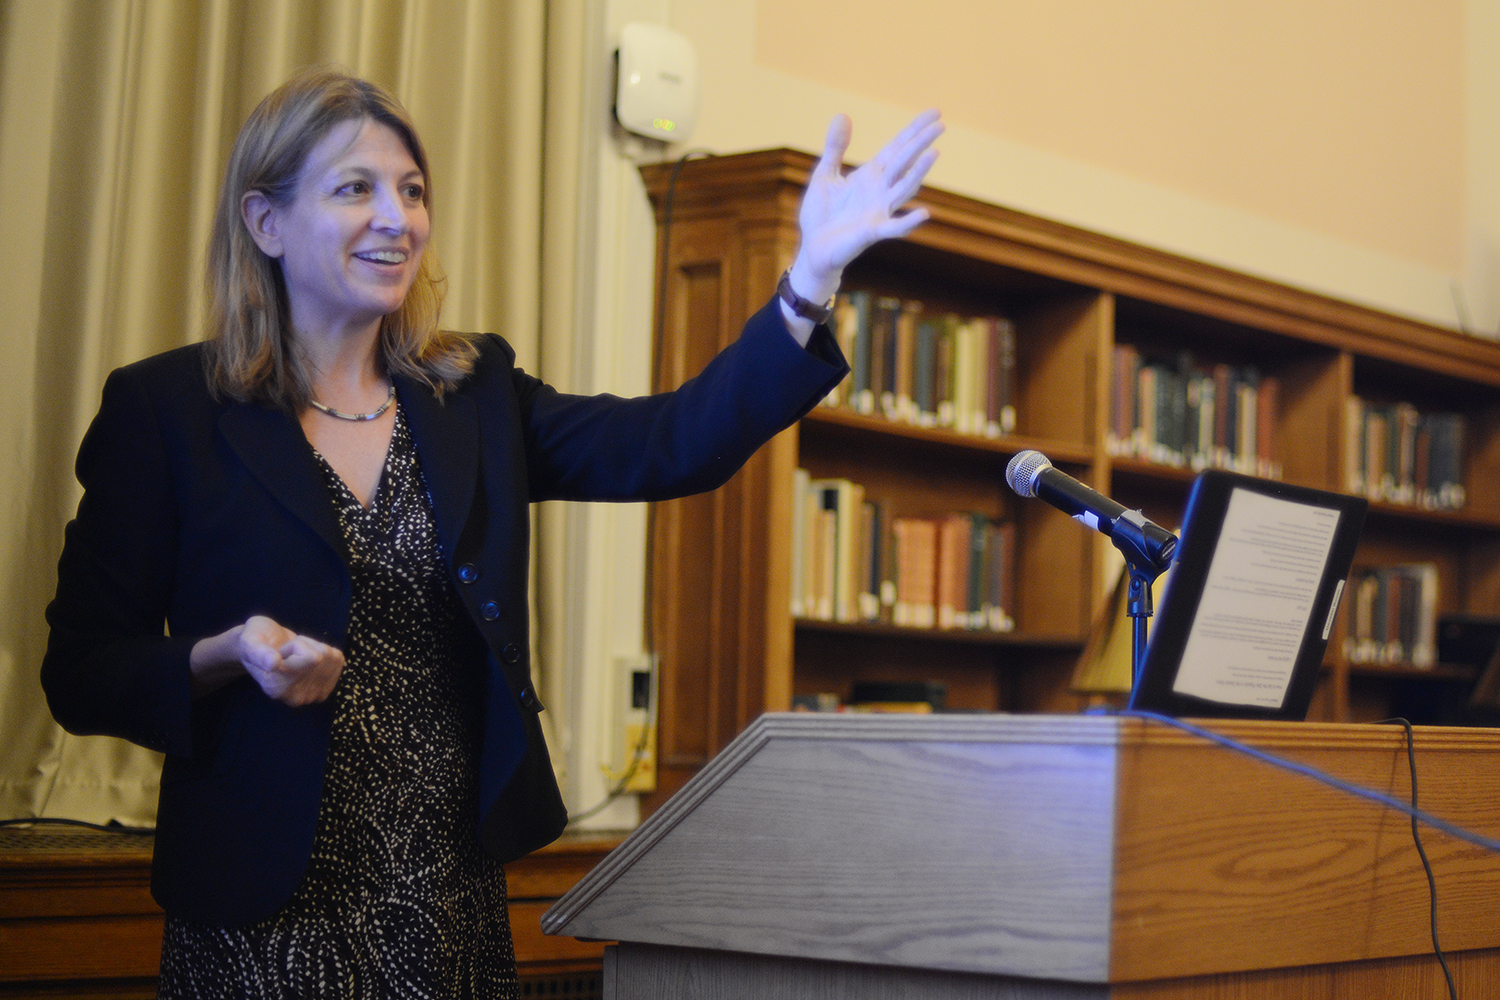 "Bethany Berger '90, the Thomas F. Gallivan, Jr. Professor at the University of Connecticut School of Law, delivered the annual Constitution Day Lecture on Sept. 17 in Olin Library's Smith Reading Room. Her topic was ""Birthright Citizenship on Trial — Immigration and Indigeneity."" Egged on by Donald Trump, the majority of Republican candidates have supported ending birthright citizenship. This talk looked at this 14th Amendment right, its constitutional origins, and the different things it meant for American Indians and immigrants."